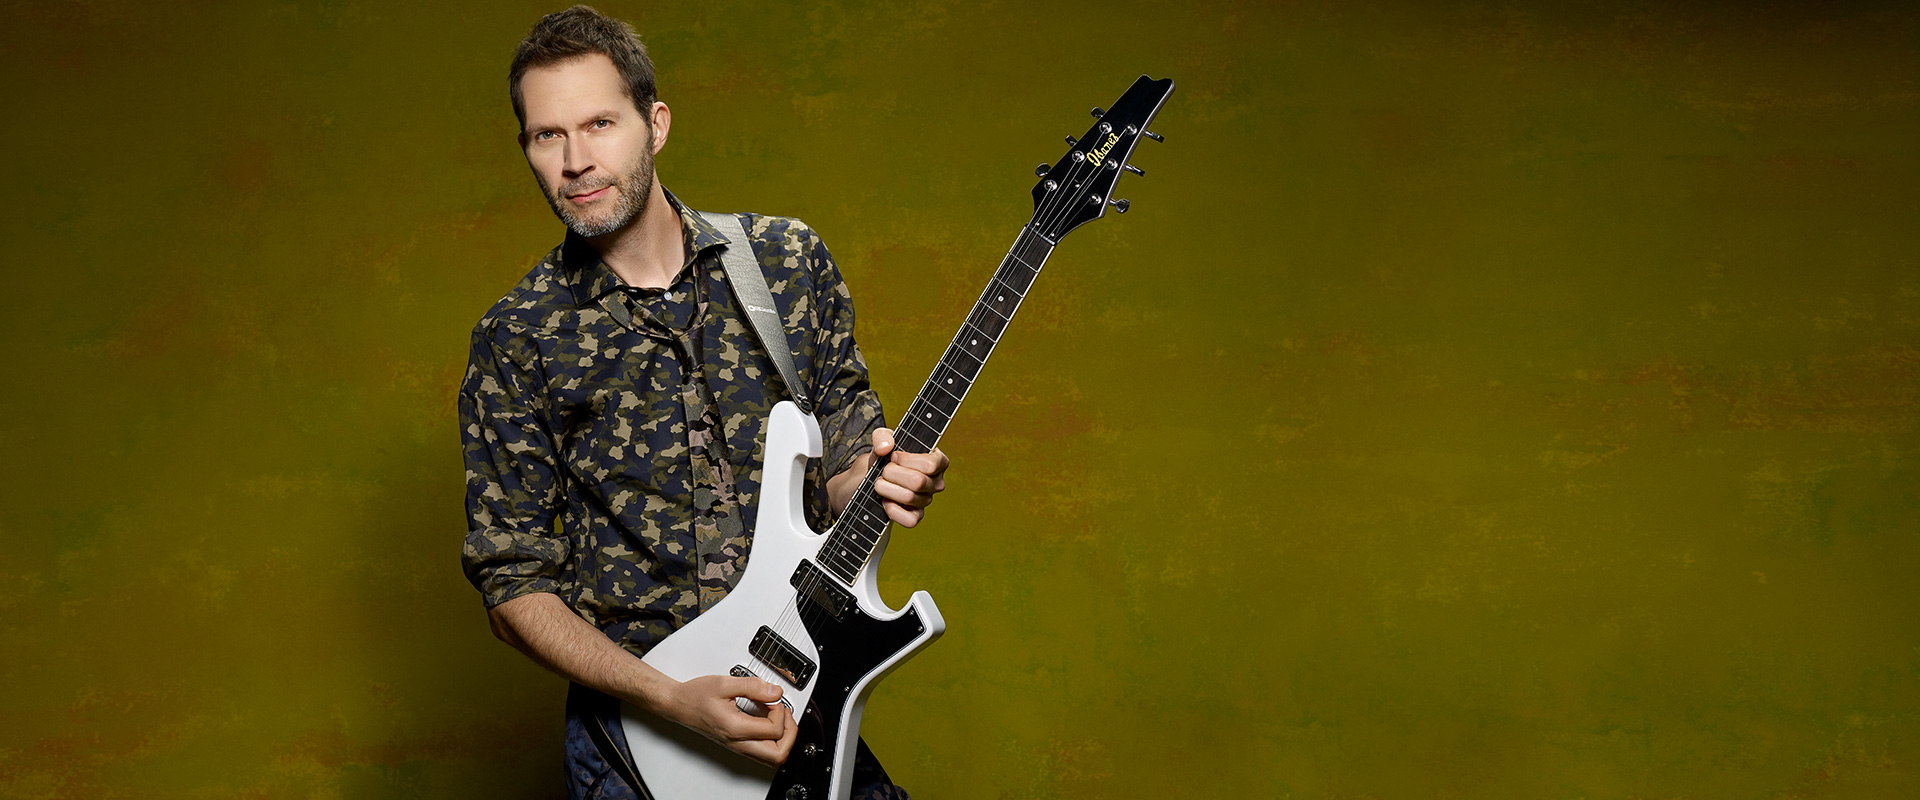 Paul Gilbert for DiMarzio